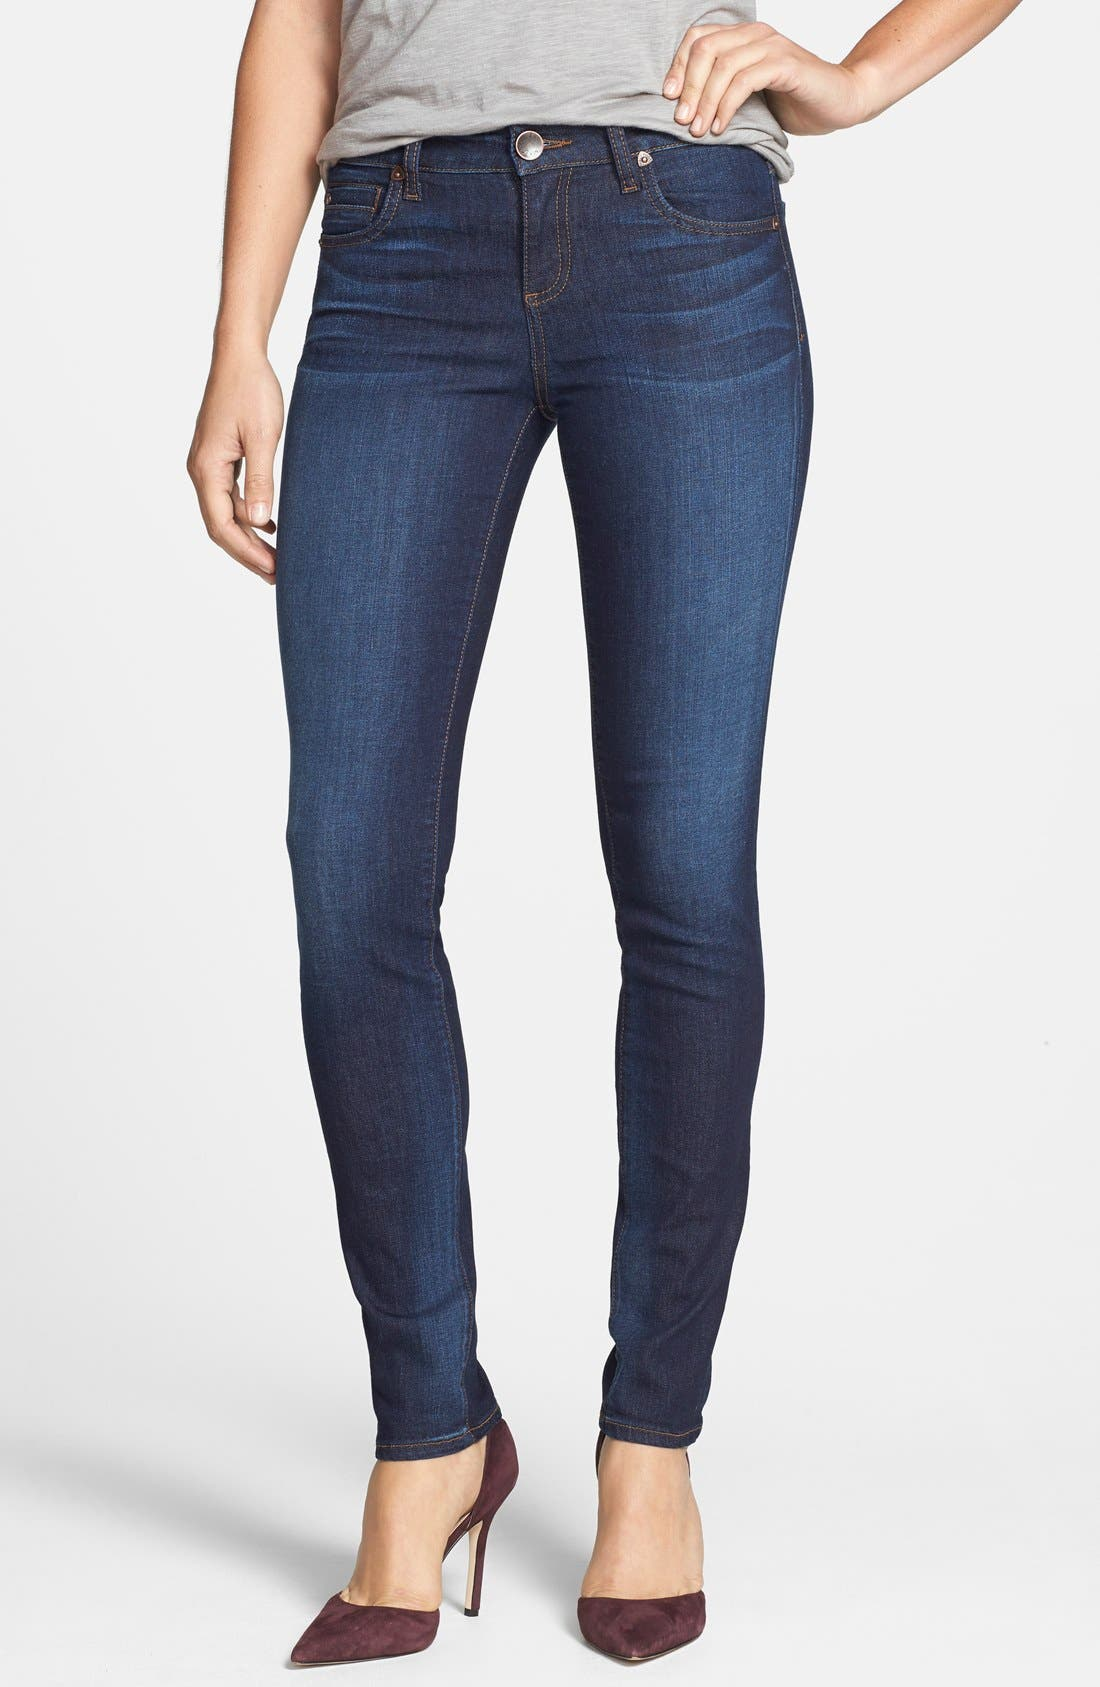 'Diana' Stretch Skinny Jeans,                             Main thumbnail 1, color,                             402